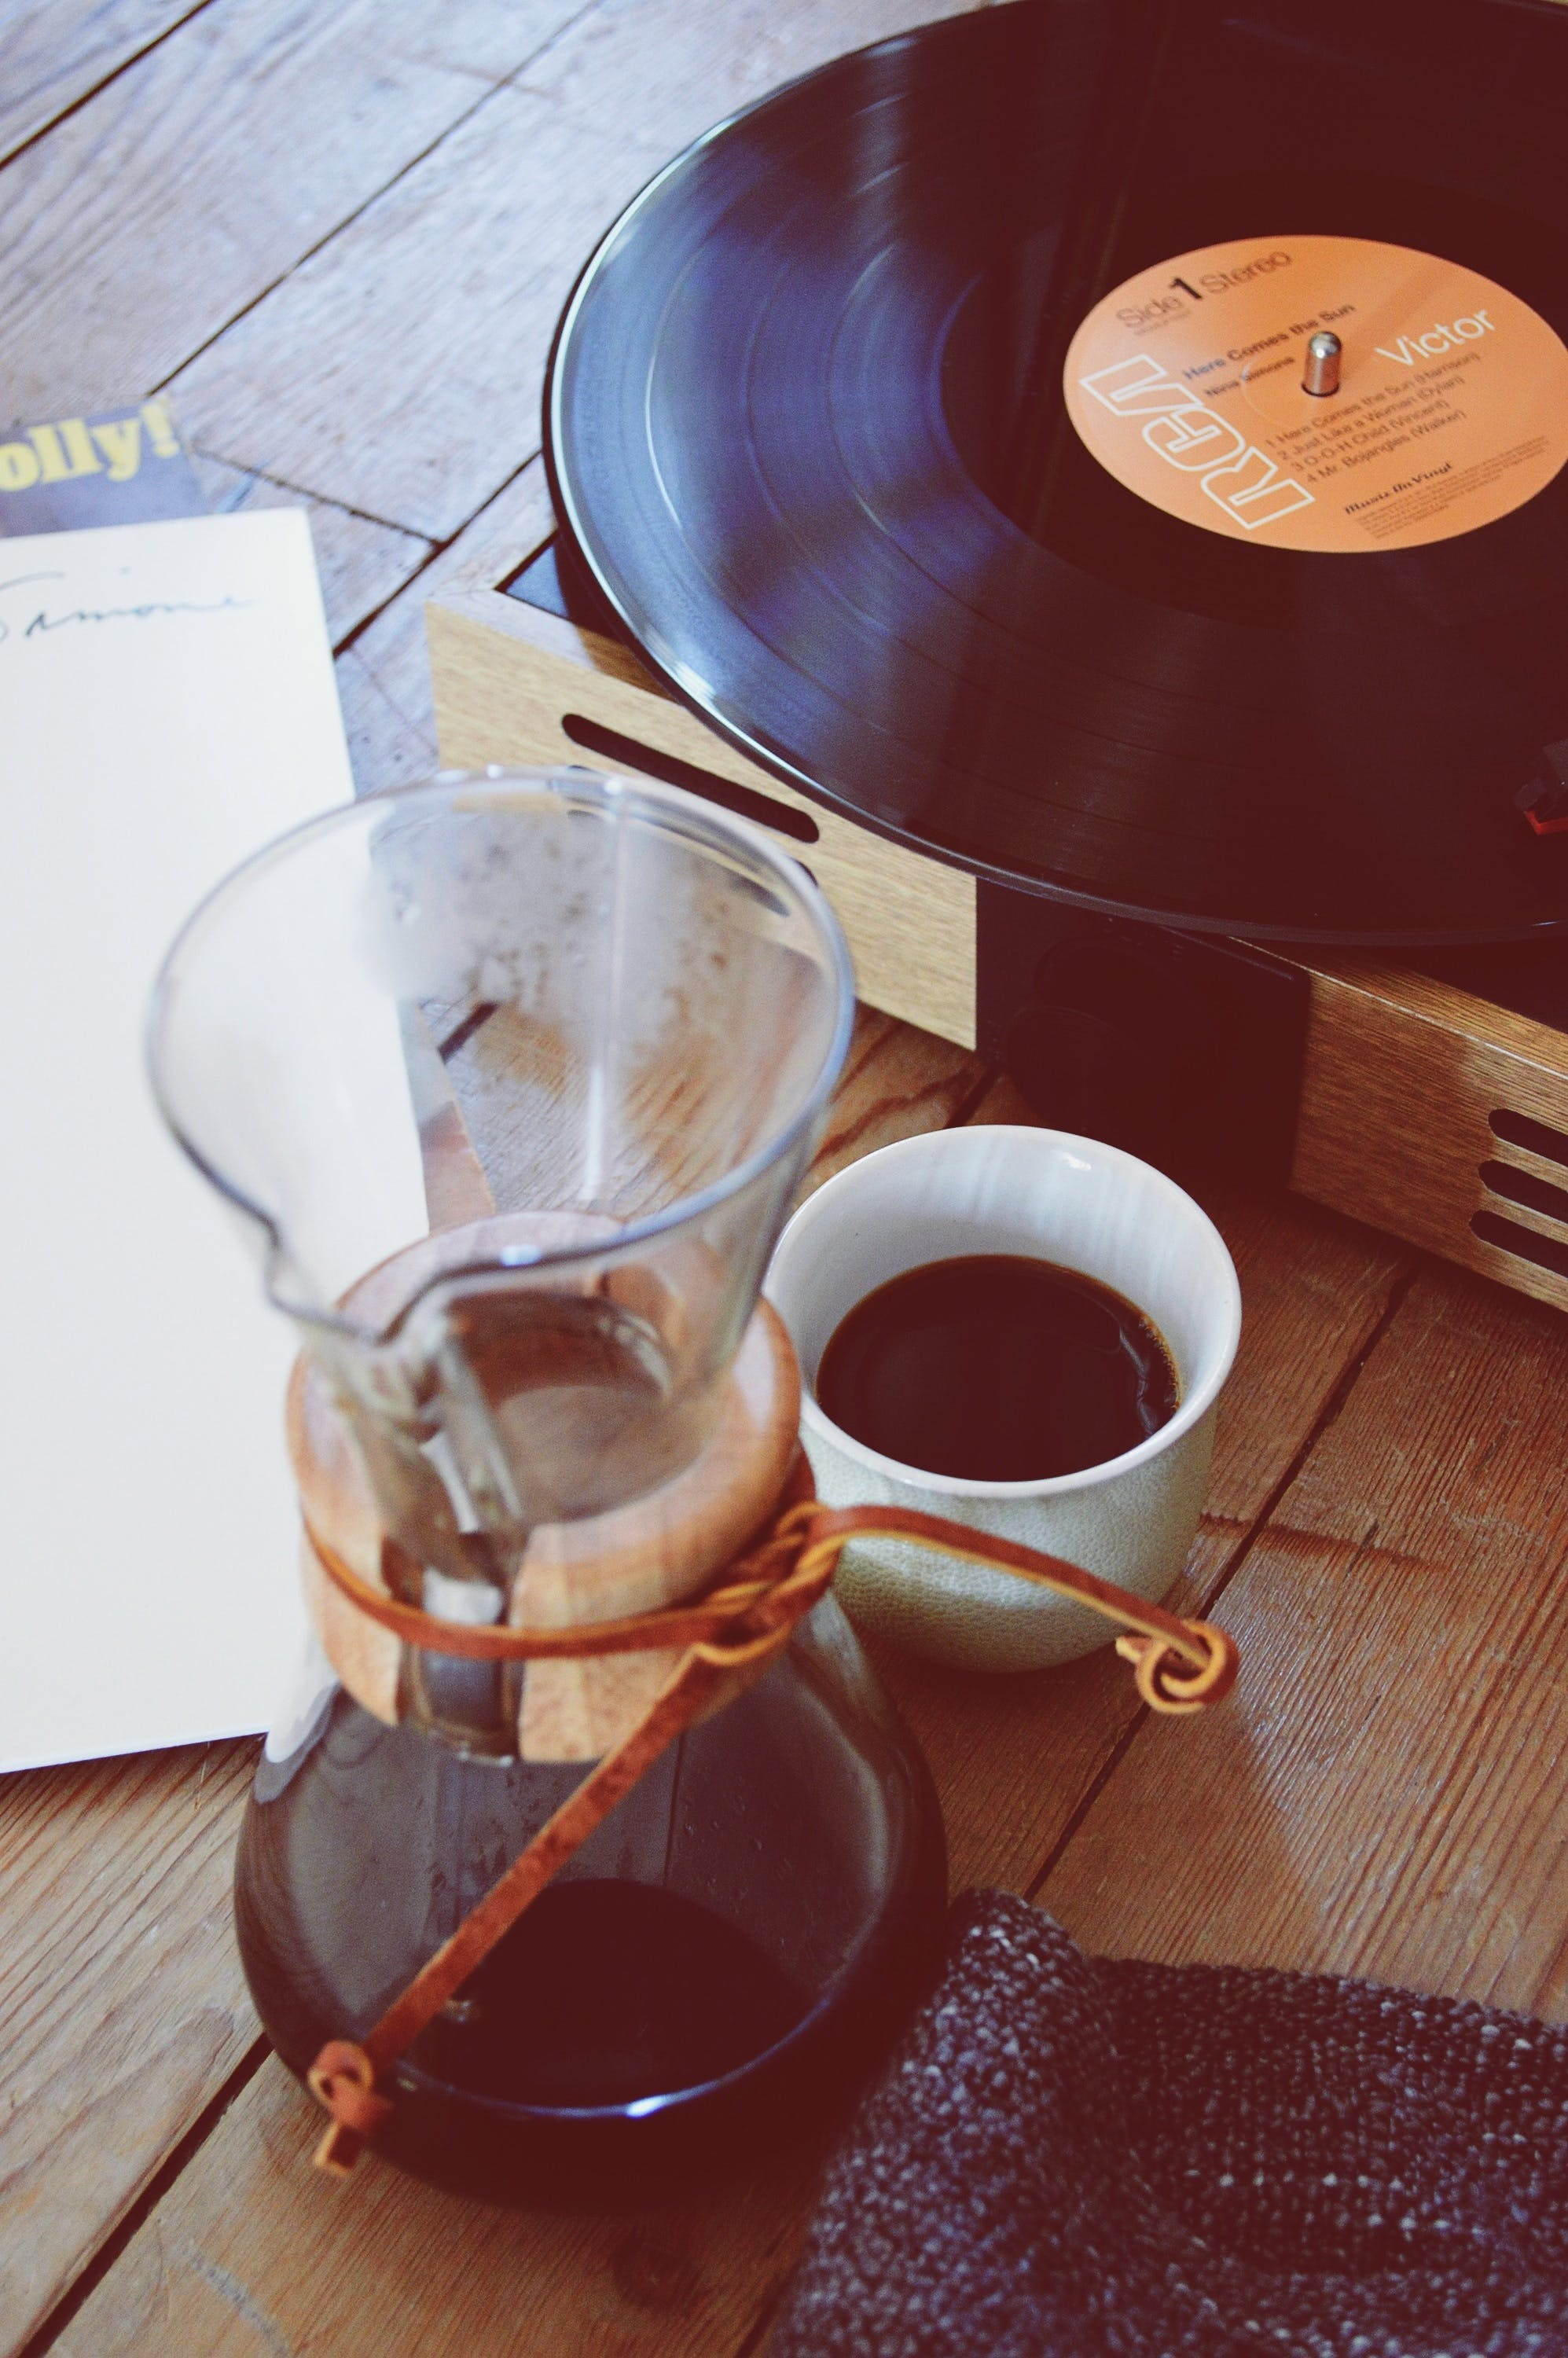 Free stock photo of coffee, notebook, vintage, music